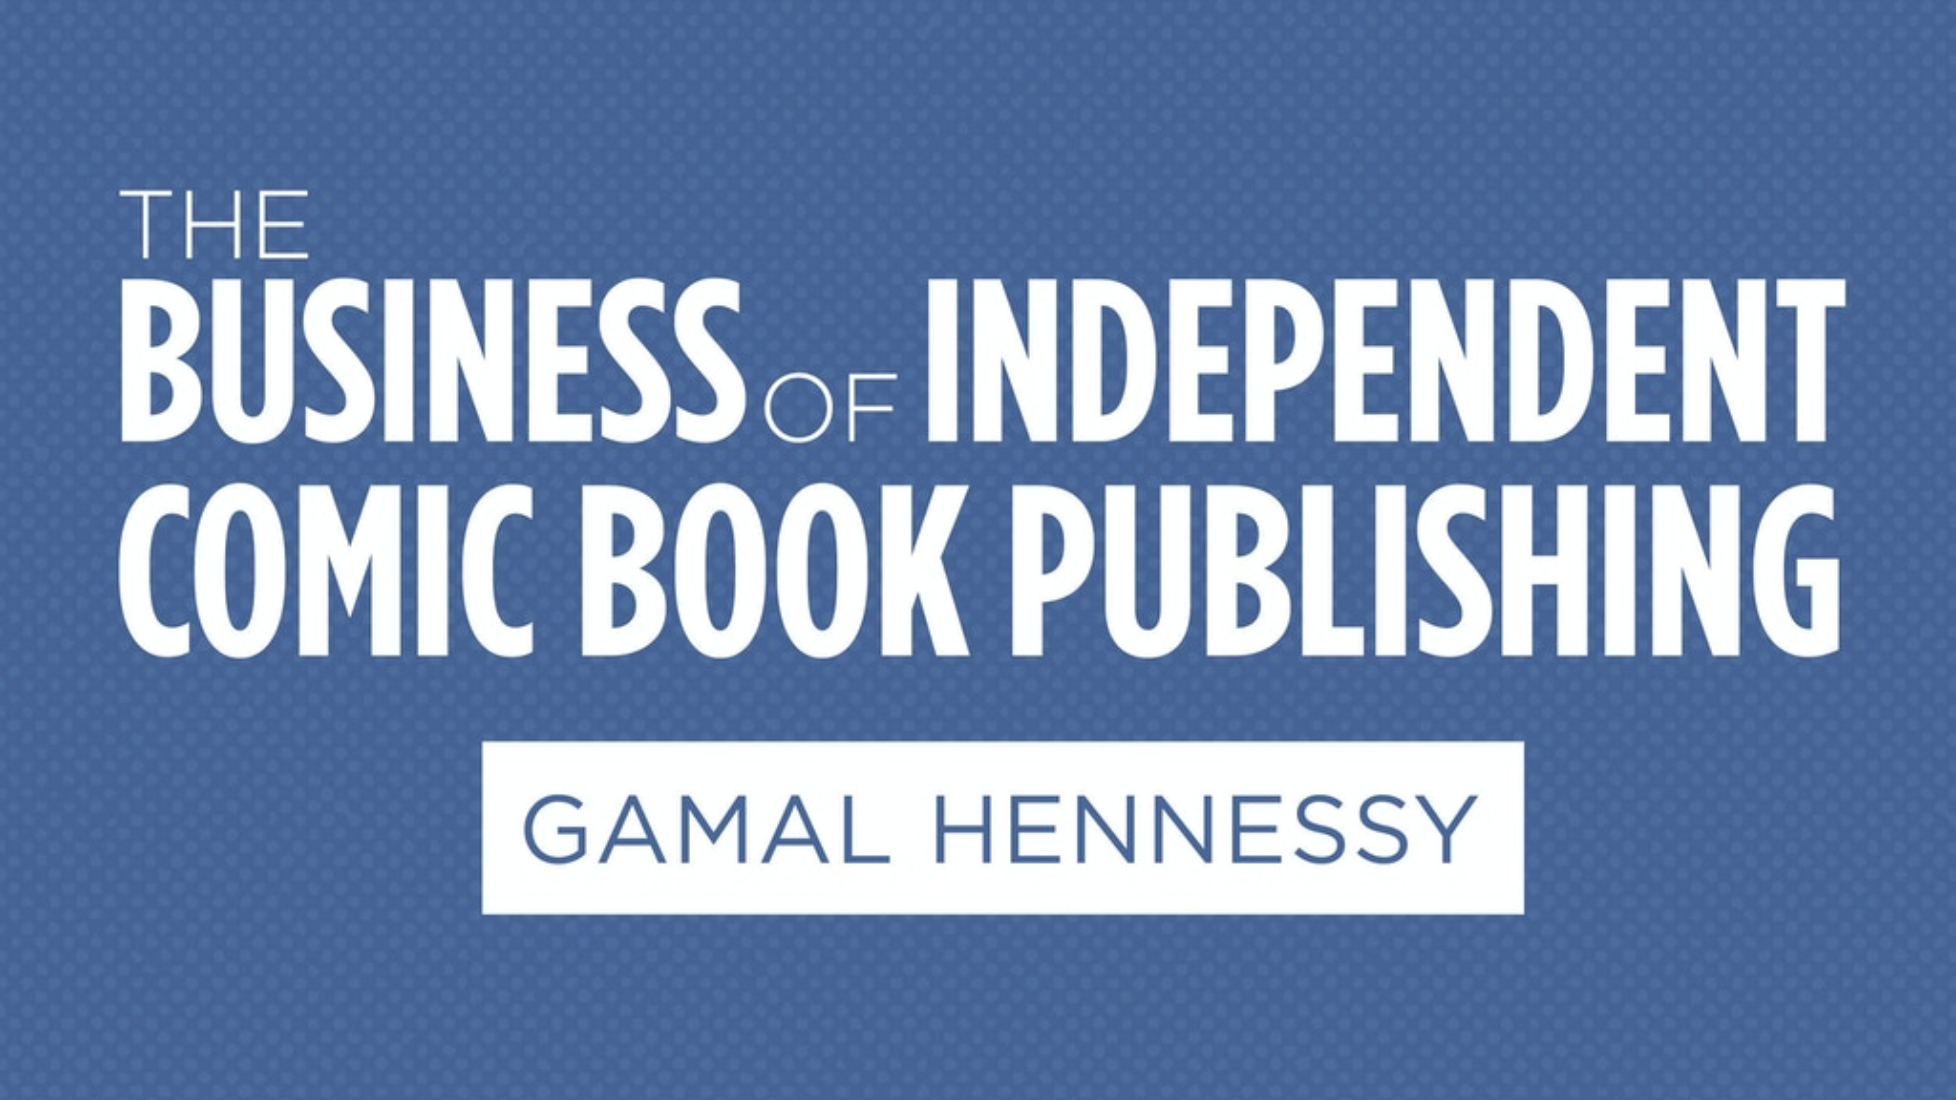 Gamal Hennessy wrote the book on indie comics publishing